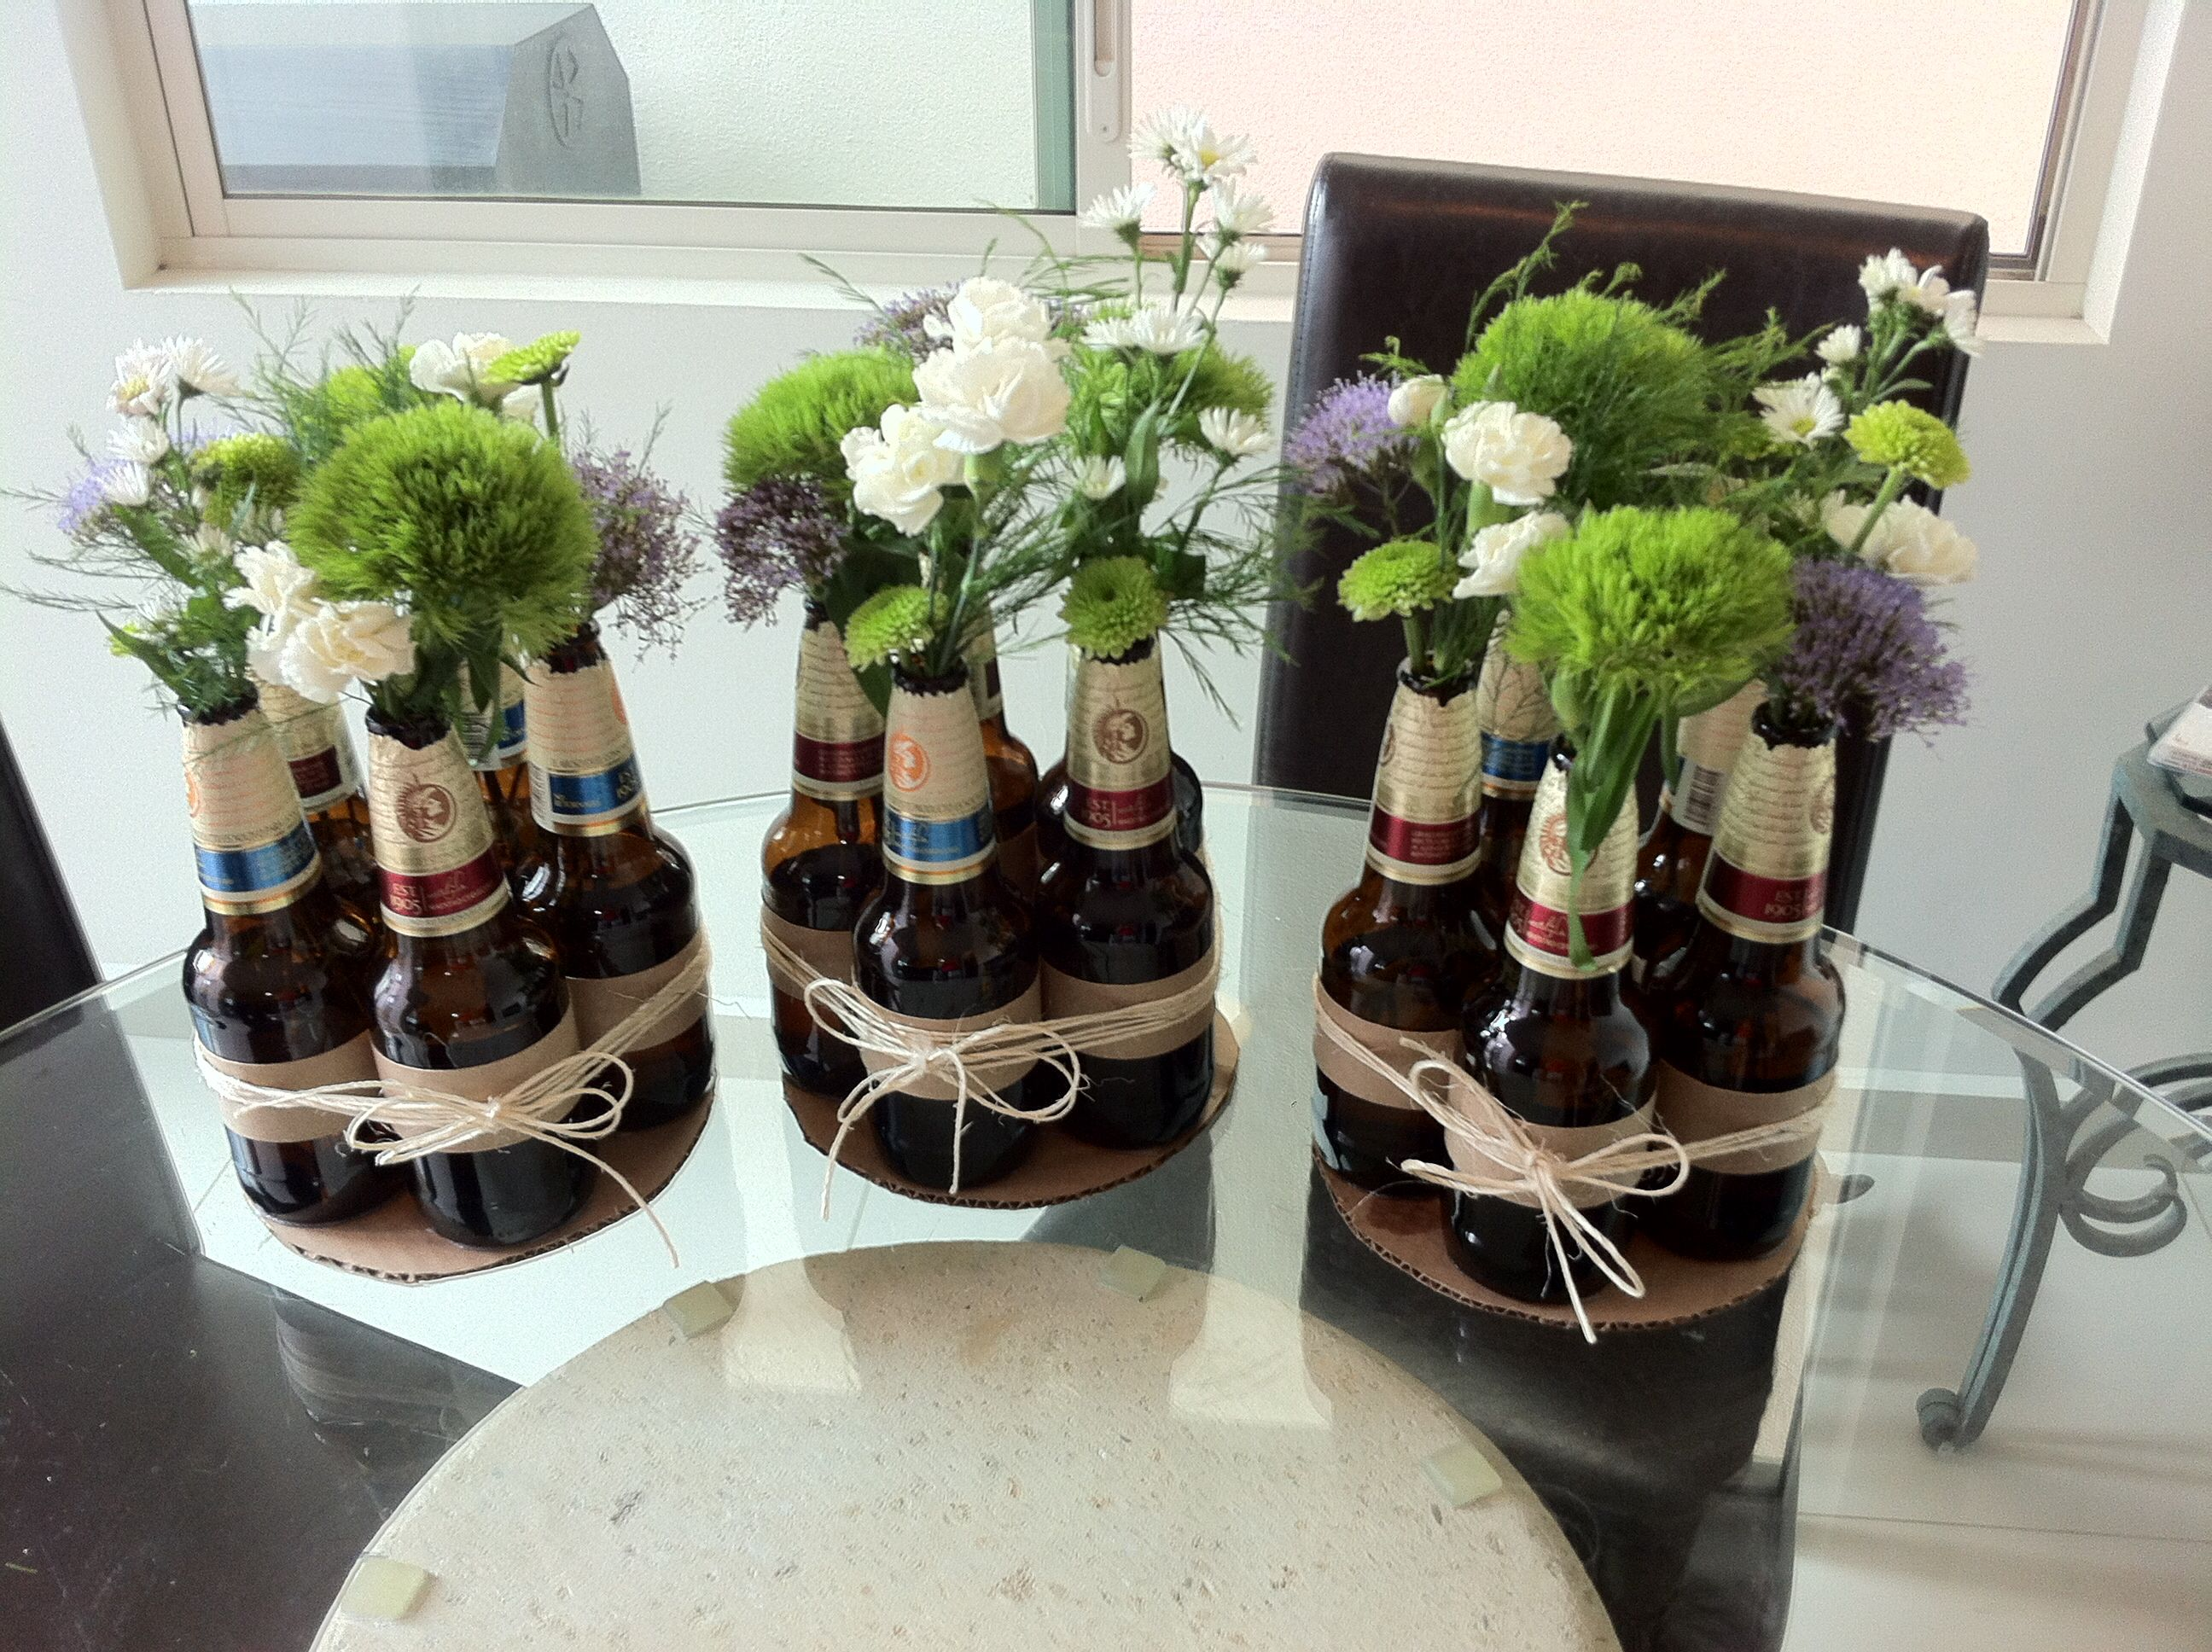 Beer bottle centerpiece party for him retirement party Rustikale tischdeko